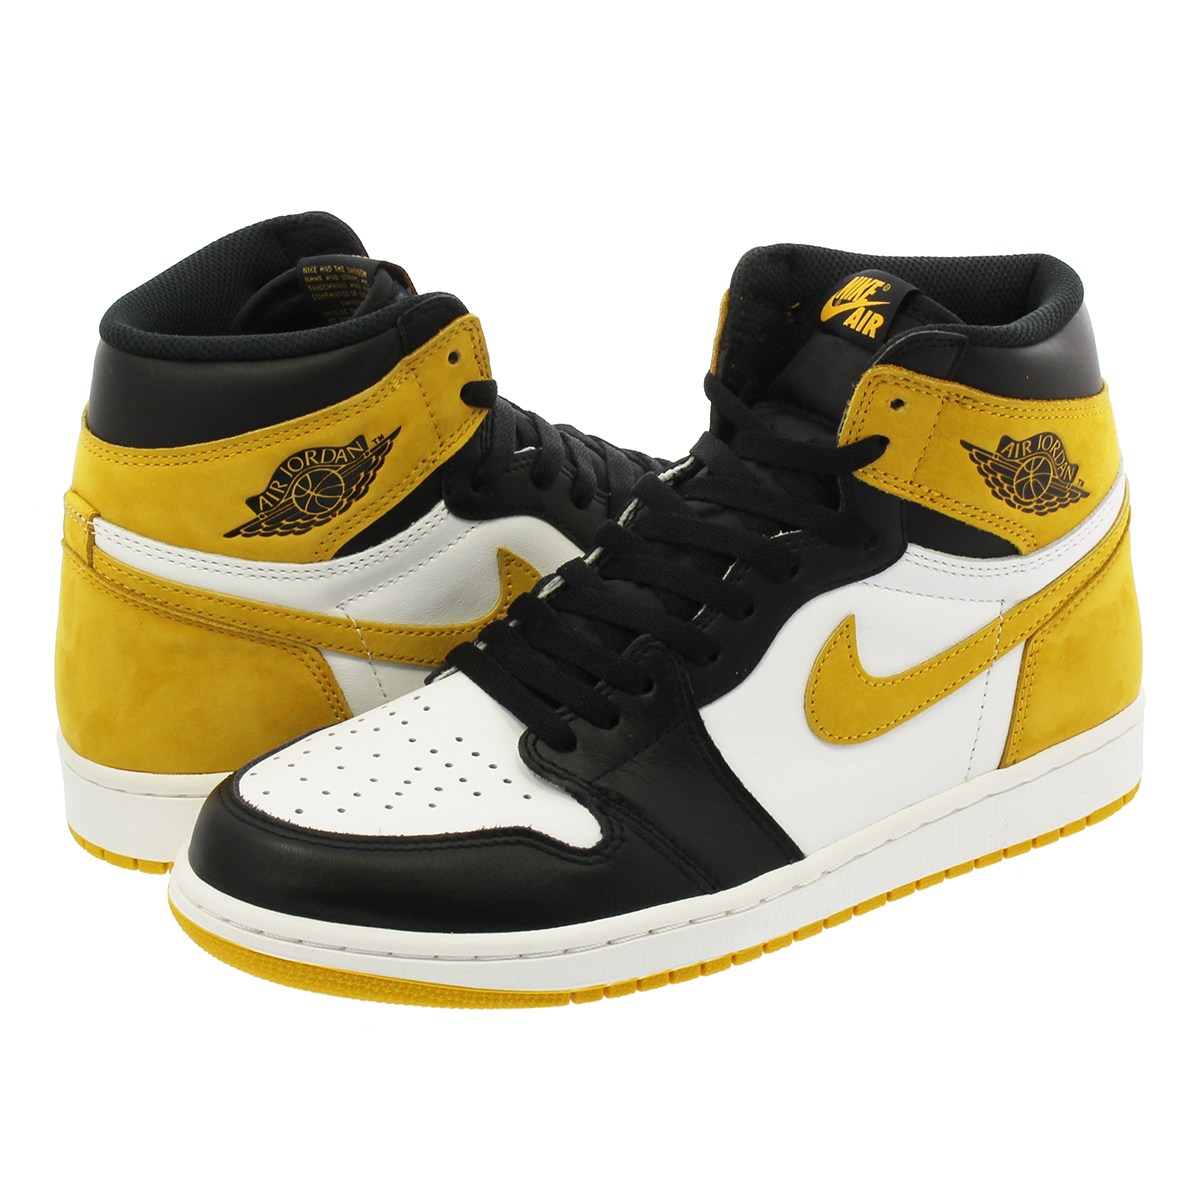 best service 42933 fe63e NIKE AIR JORDAN 1 RETRO HIGH OG Nike Air Jordan 1 nostalgic high OG YELLOW  OCHRE